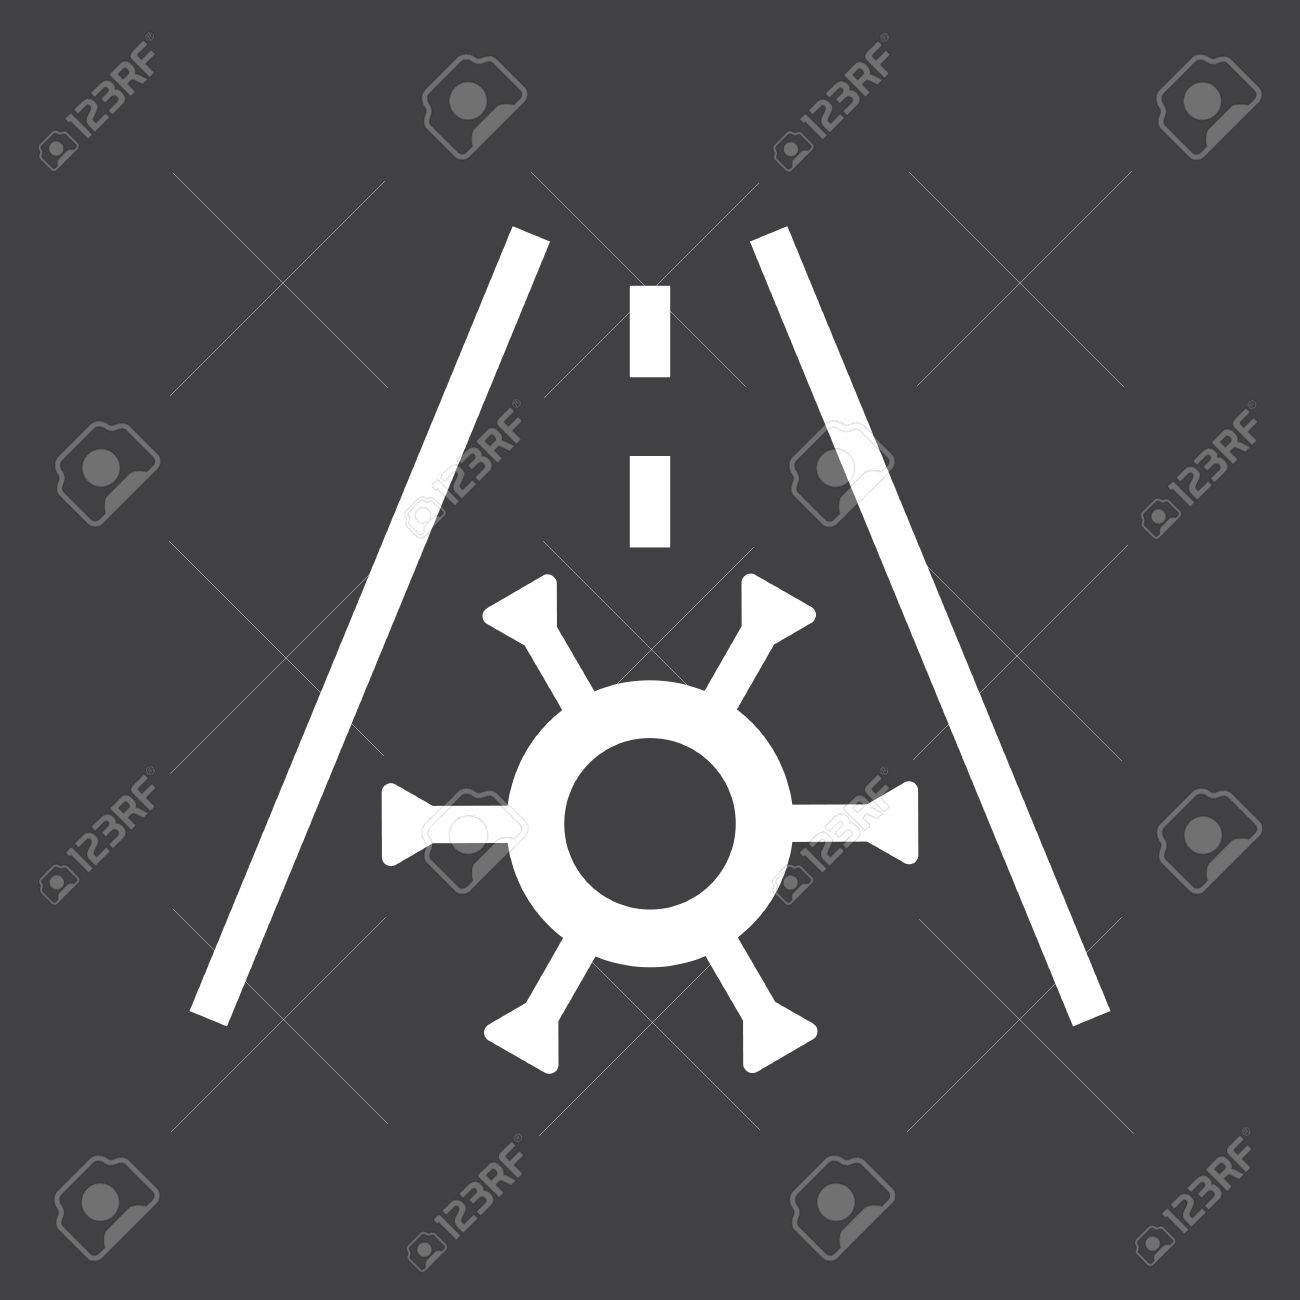 Car Frost Icon Car Dashboard Icon Vector Illustration Royalty - Car image sign of dashboardcar dashboard icons stock images royaltyfree imagesvectors